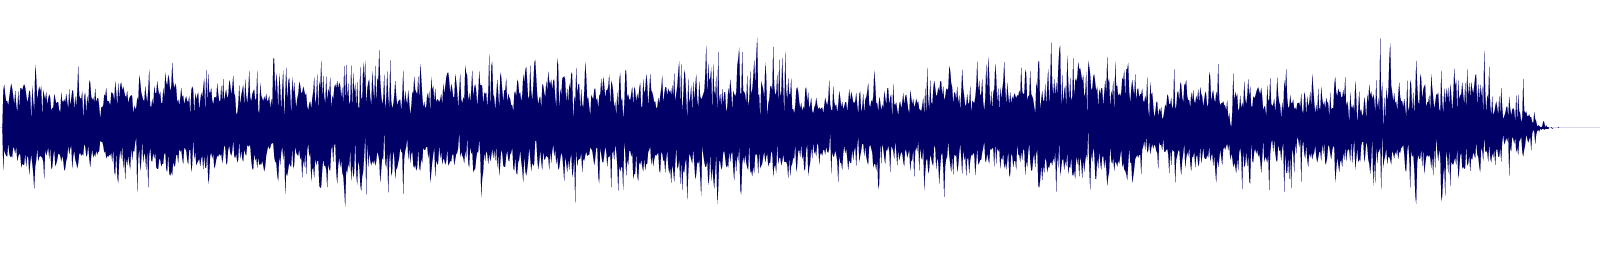 waveform of track #94774